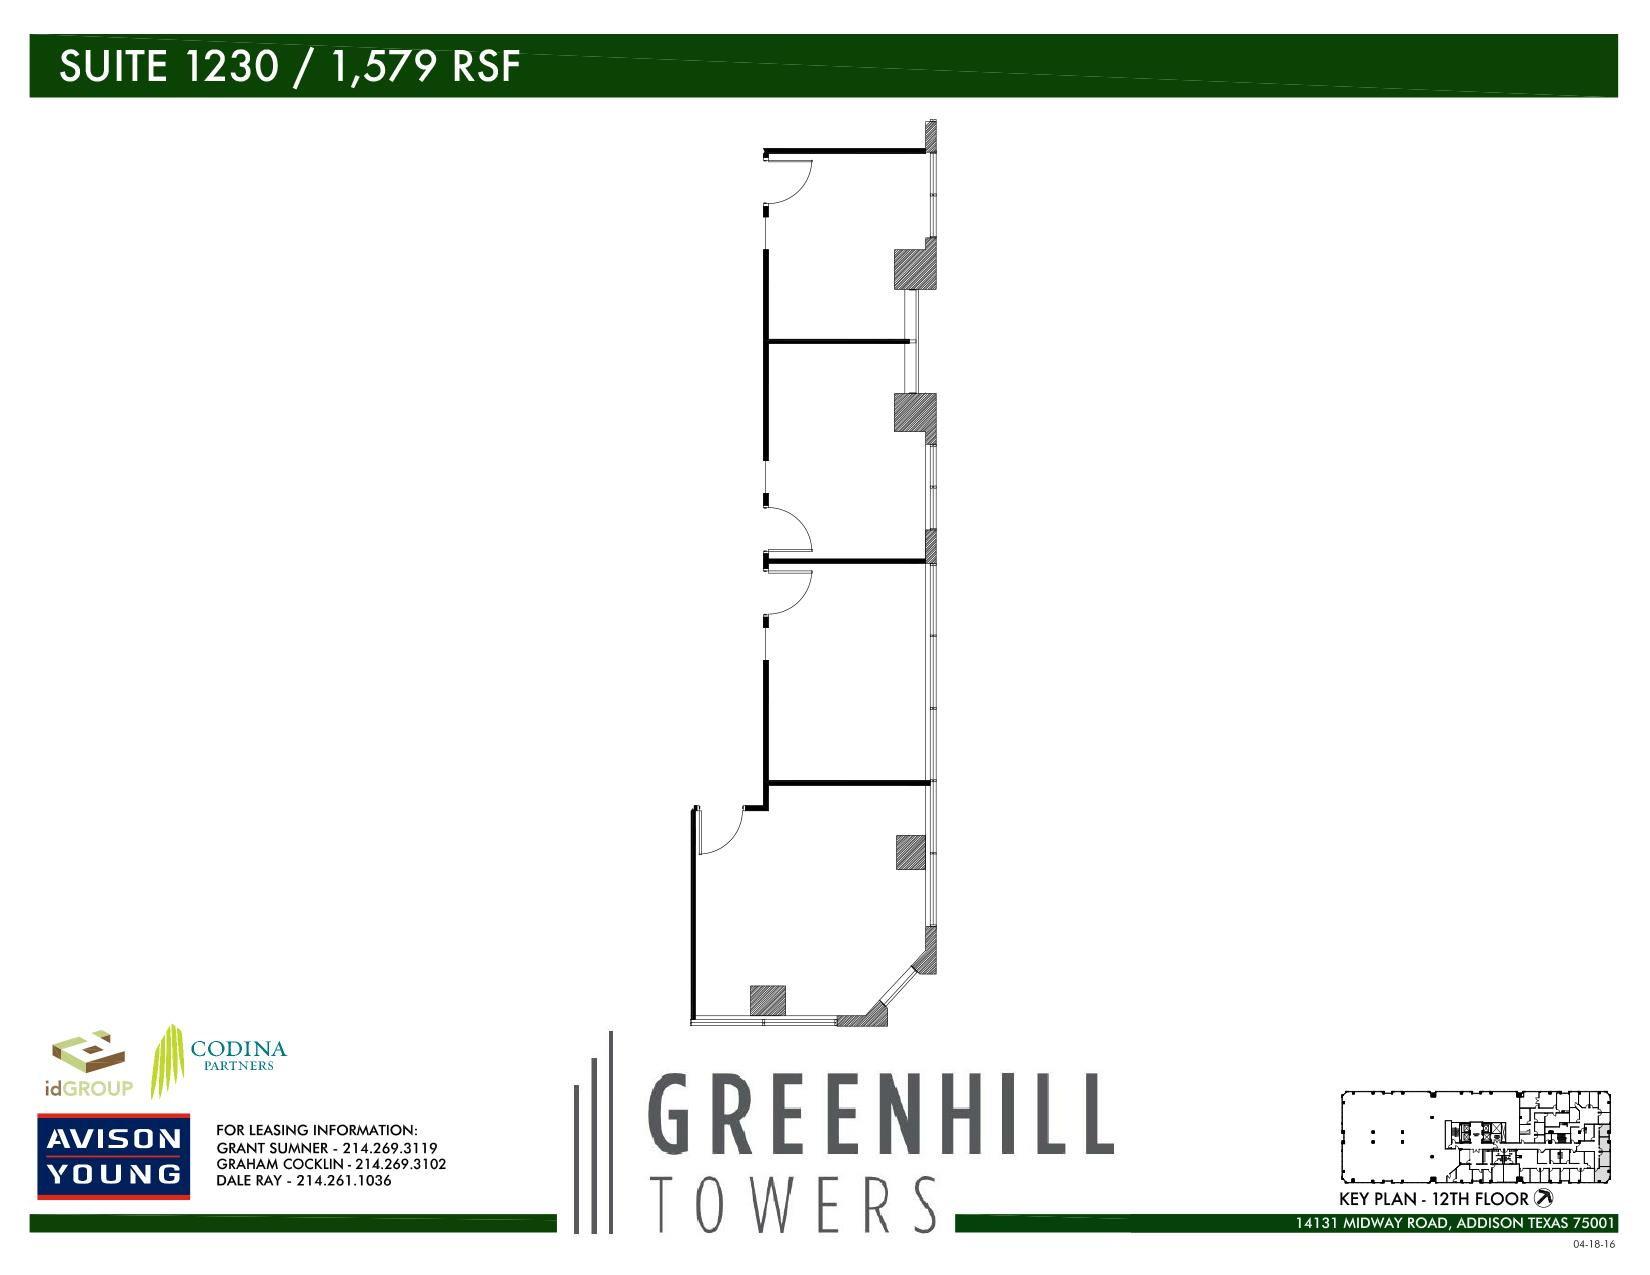 Greenhill Towers | Codina Partners - Suite 1230